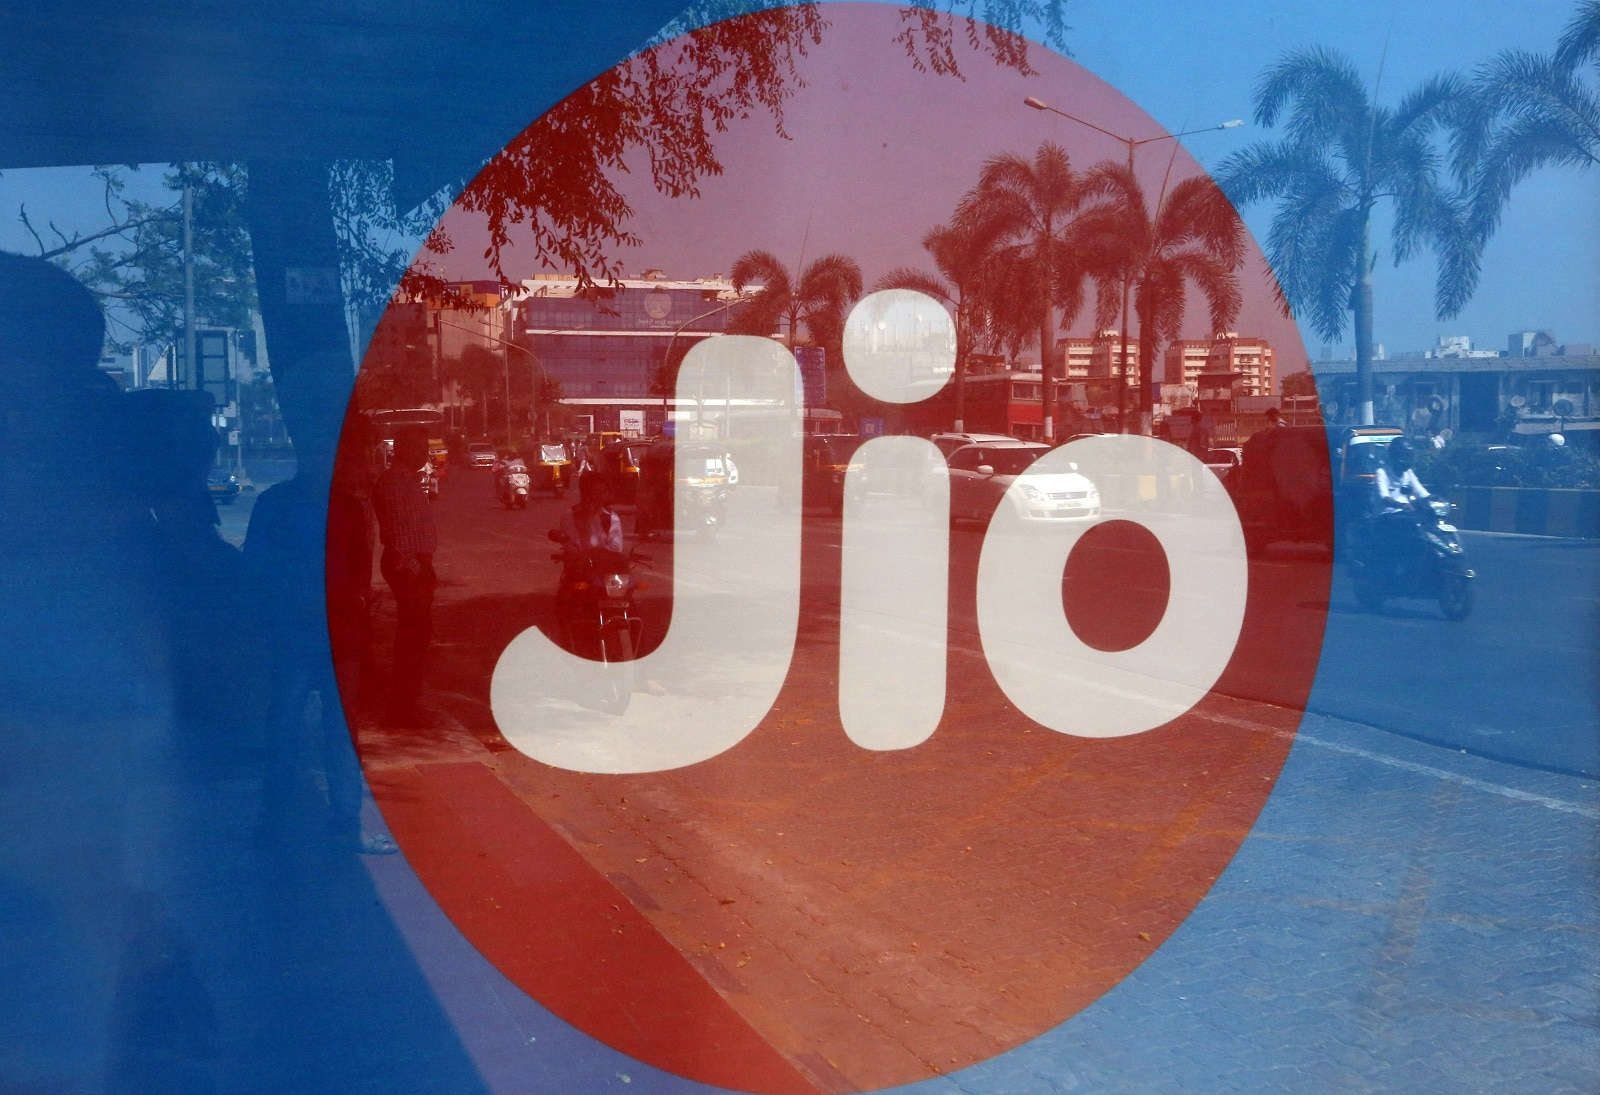 Reliance Jio will kick-start four new sources of growth: Internet of things, broadband services for home, small and medium businesses and large enterprises. (Image: Reuters).